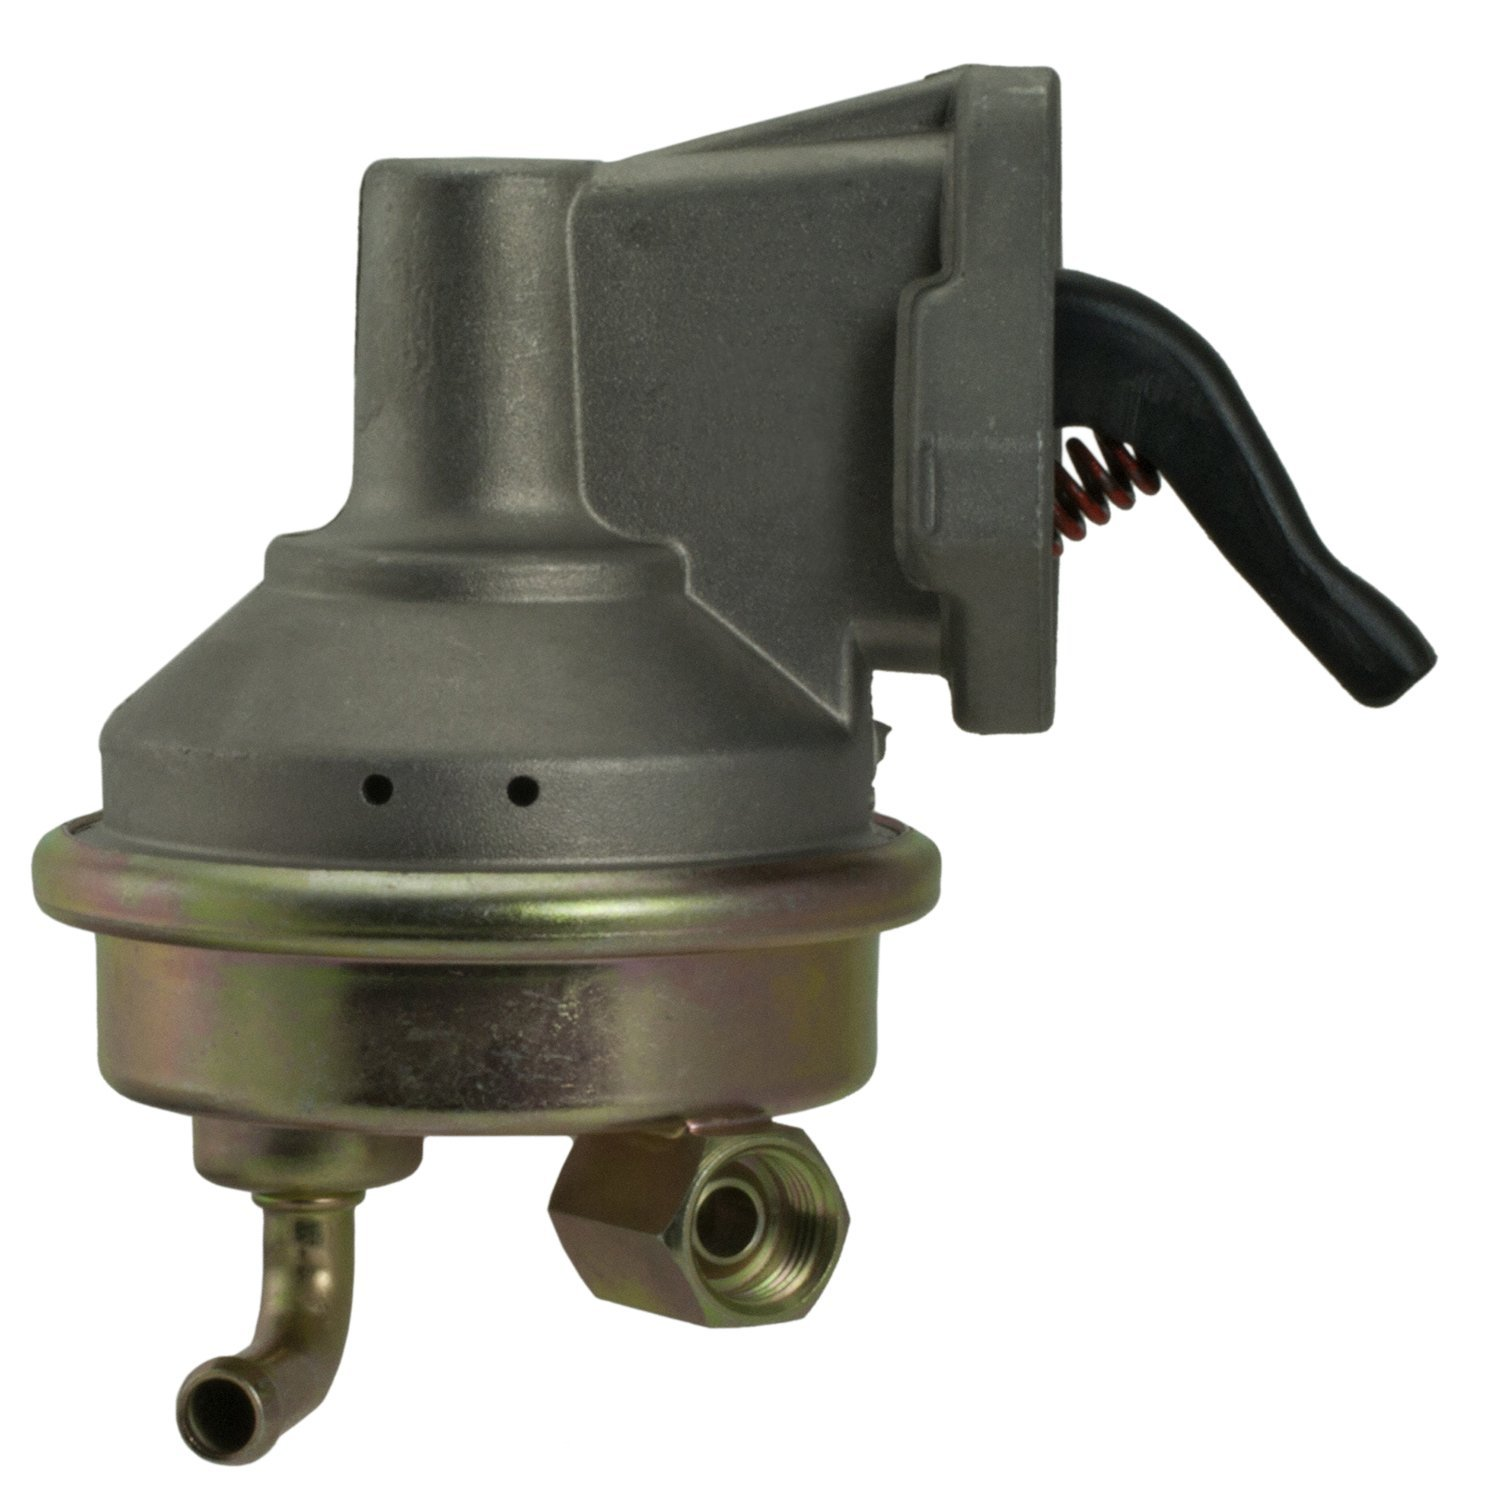 Amazon.com: Fuel Pumps & Accessories - Fuel System: Automotive ...